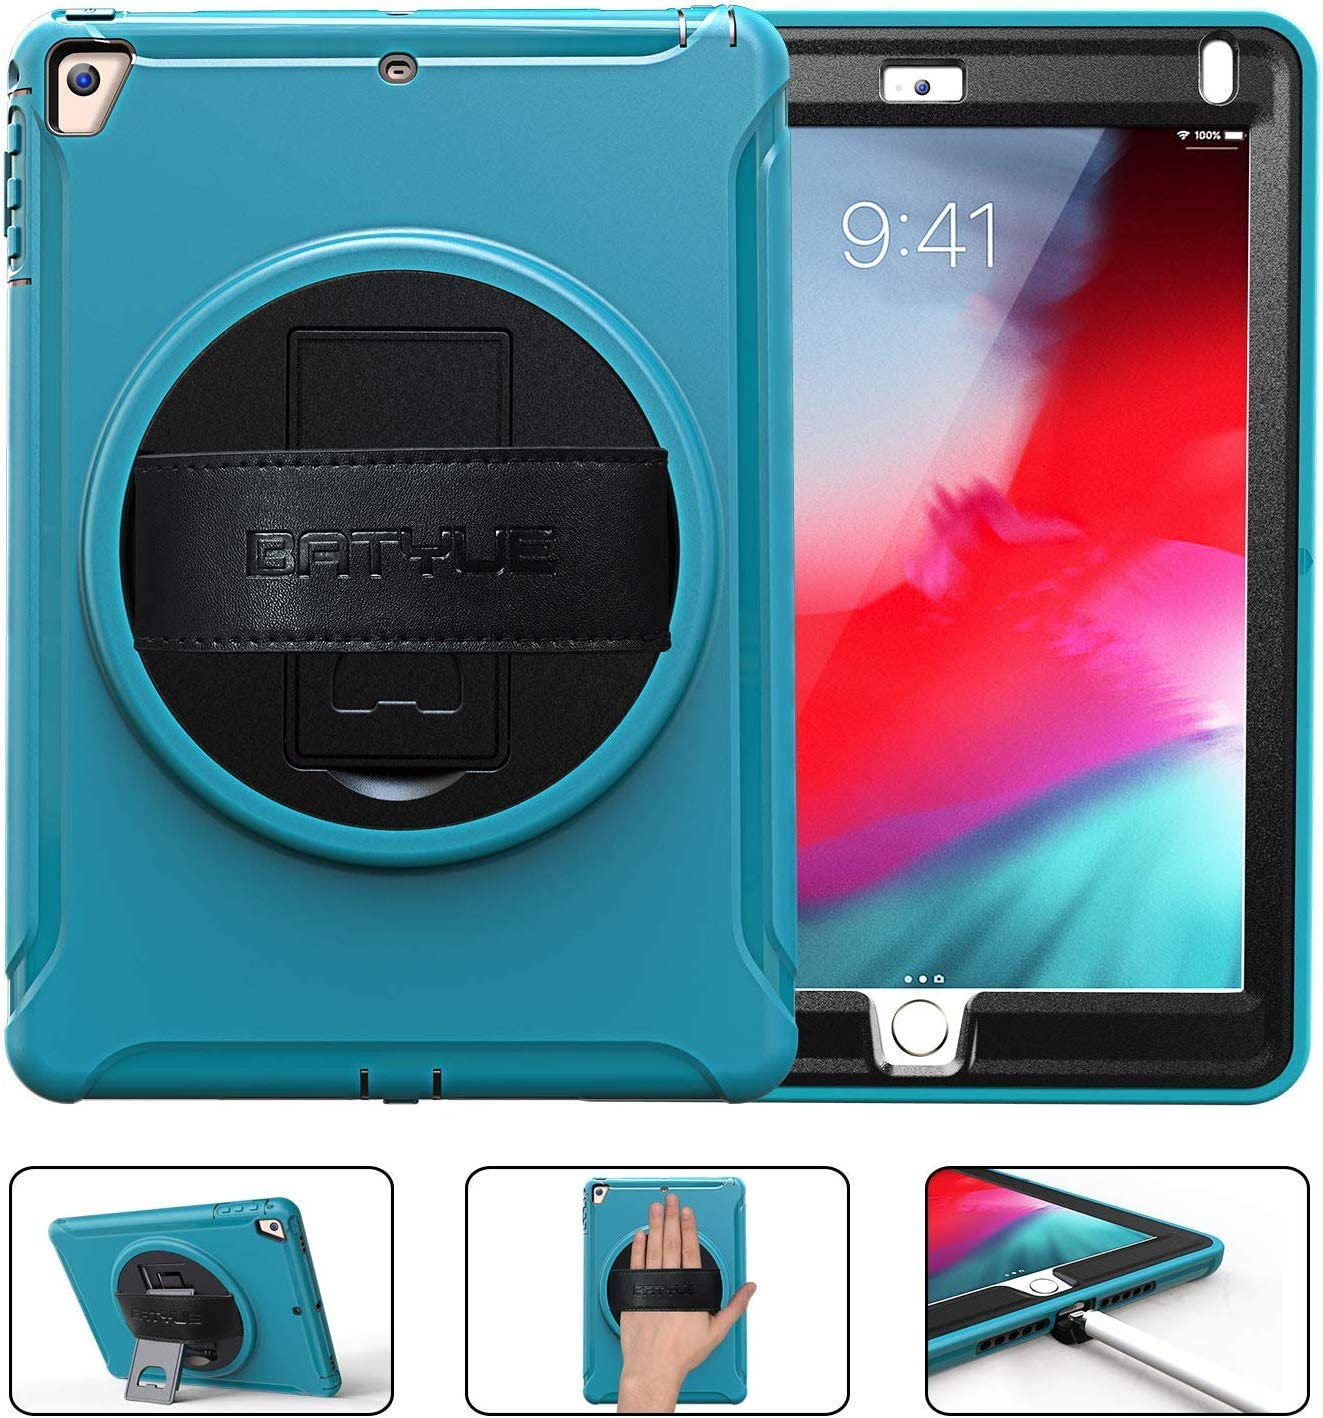 Batyue New iPad 9.7 Inch 2017/2018 Rugged Case with Hybrid Heavy Duty Protection and Built-in Kickstand/Hand Strap for Apple iPad 9.7 iPad 5th/ 6th Generation Case (Light Blue)